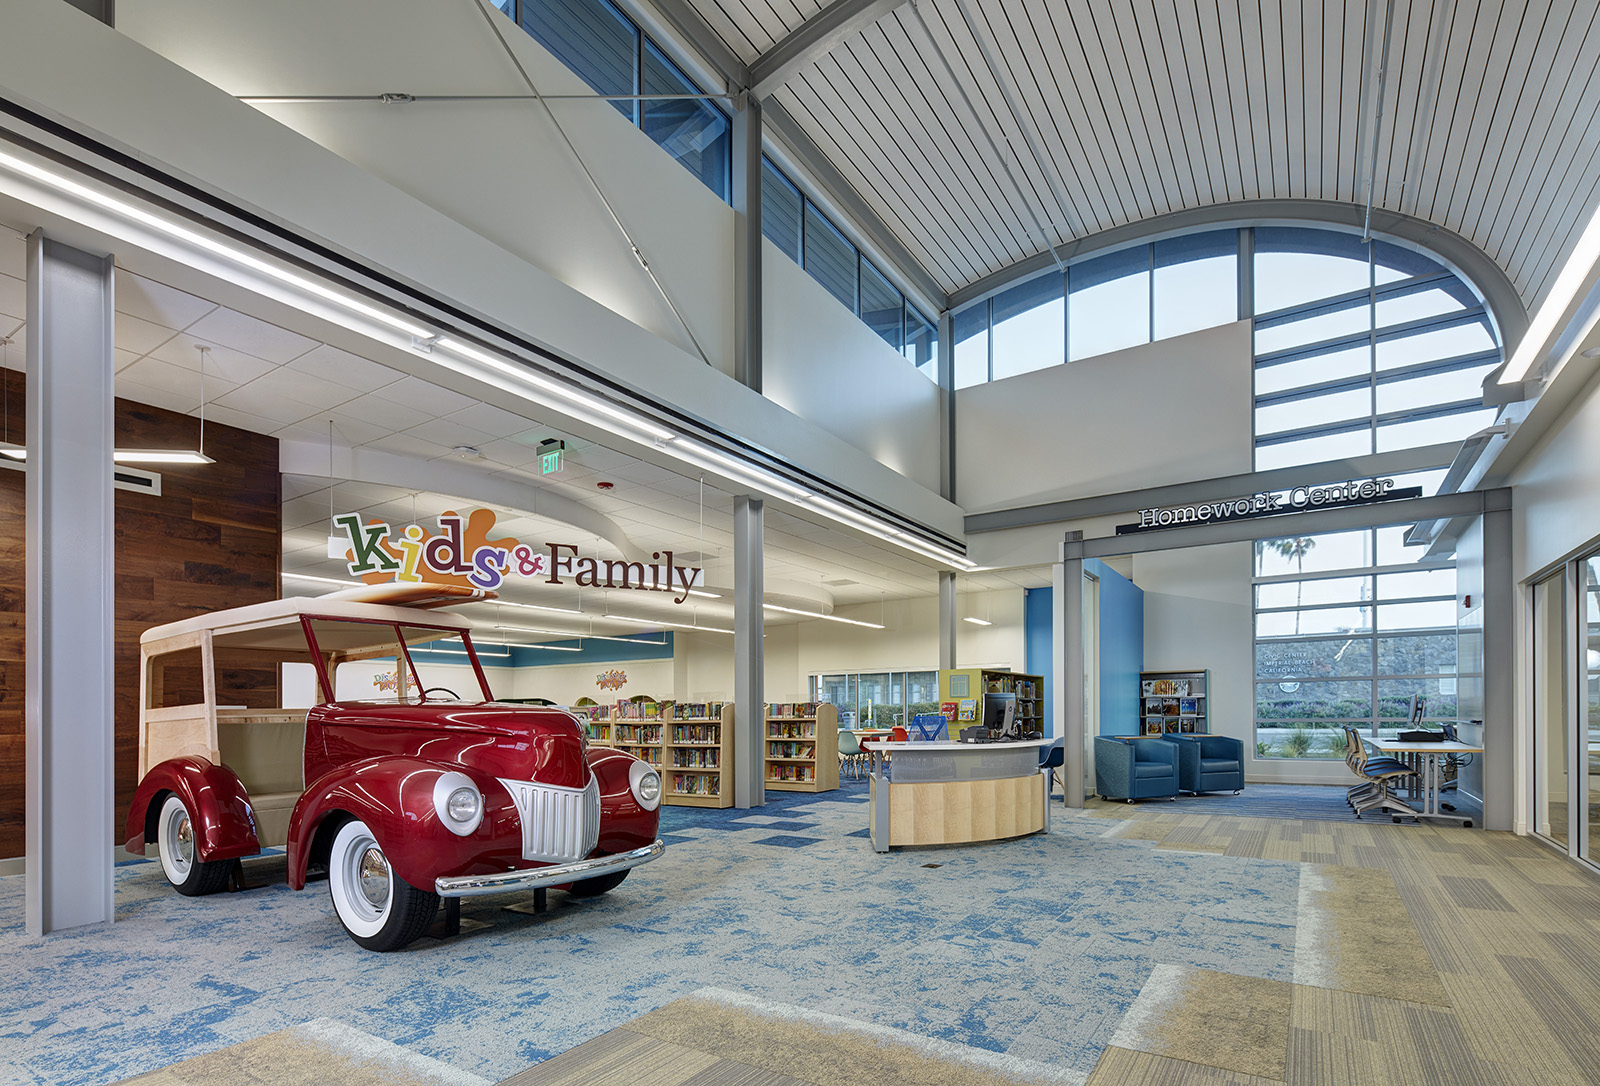 Imperial beach library wins people s choice orchid award - San diego interior design center ...